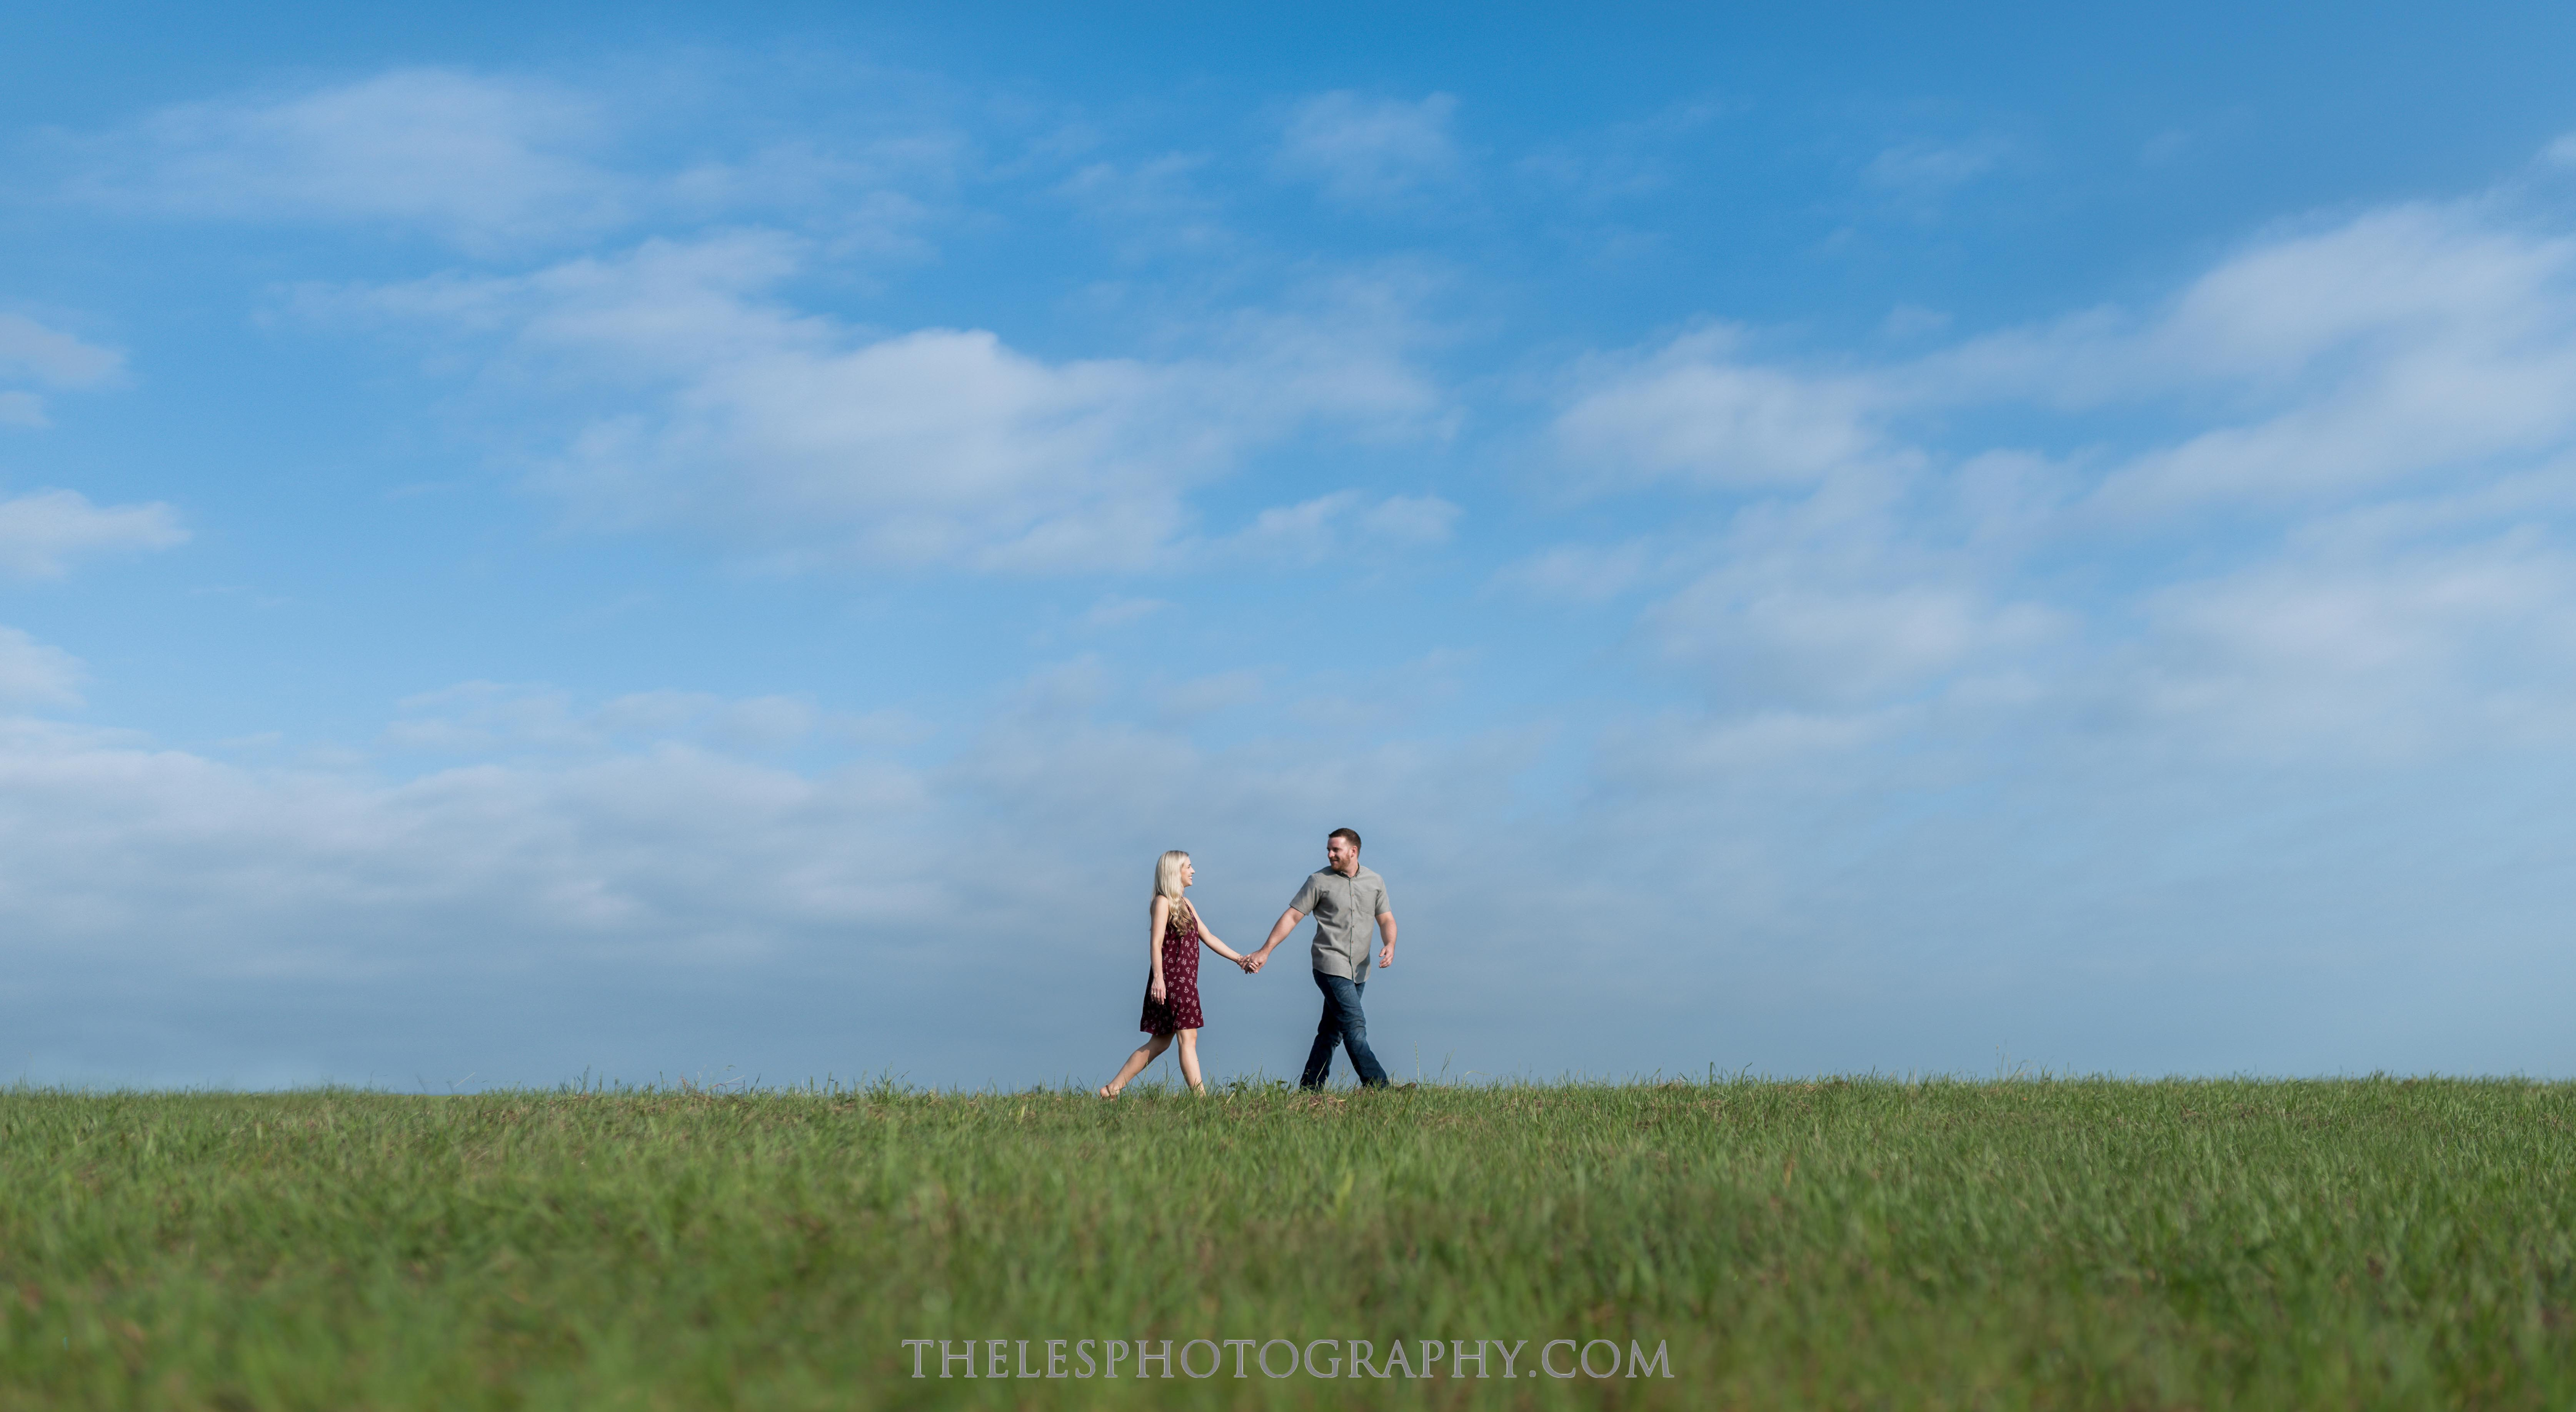 The Les Photography - Dallas Wedding Photographer - Trinity Groves Engagement - Haley and Noah 21